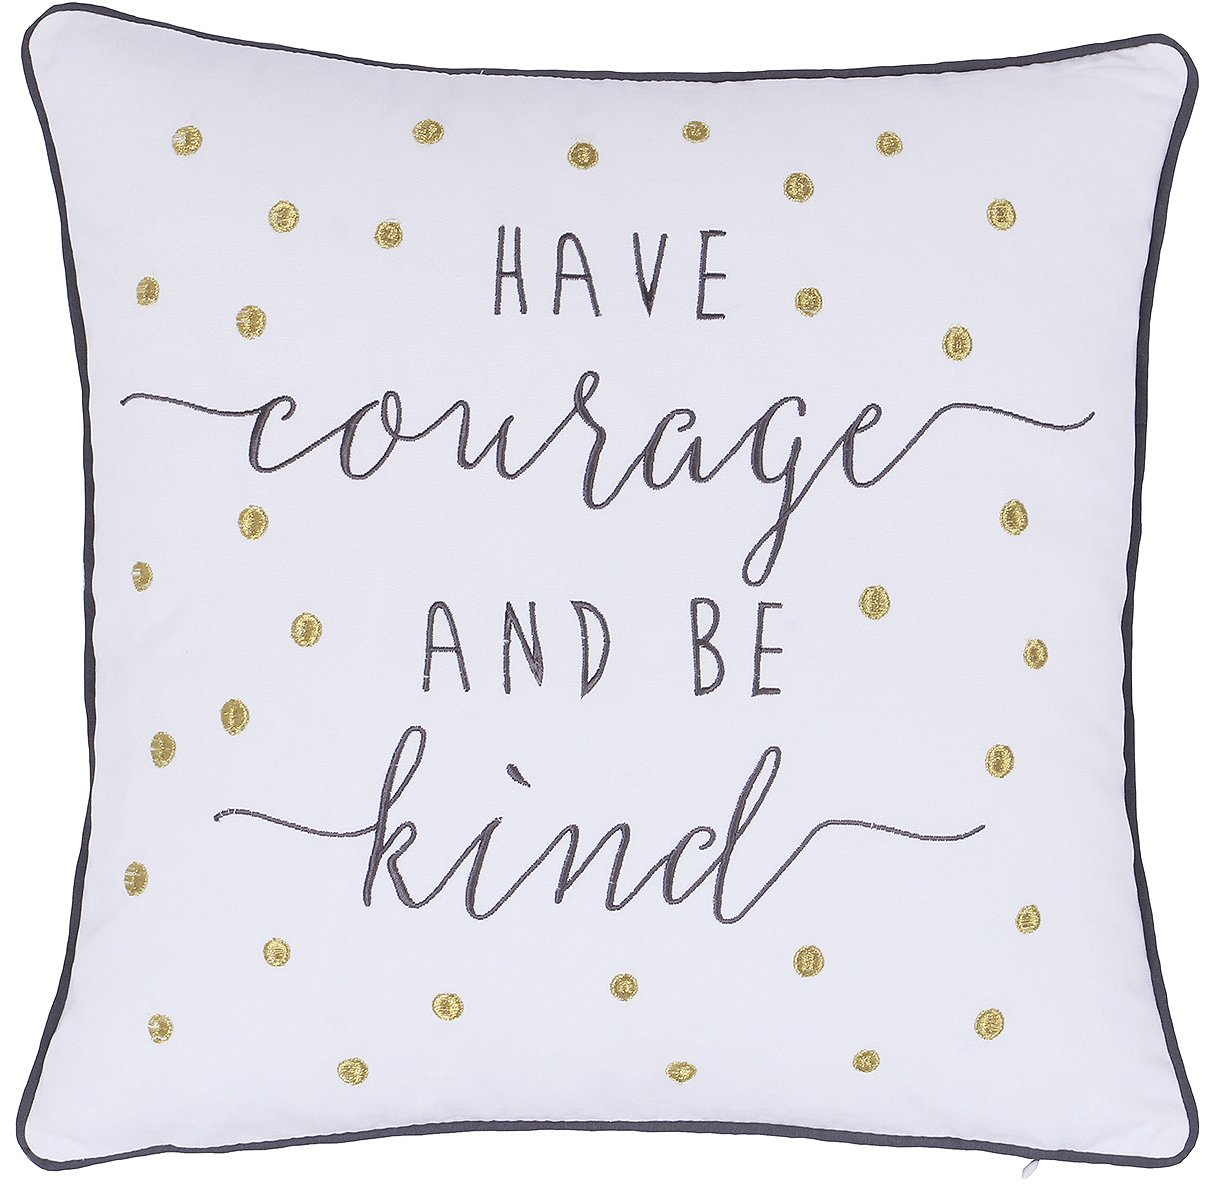 ADecor Pillow Covers Have courage and be kind Pillowcase Embroidered Pillow cover Decorative Pillow Standard Cushion Cover Inspirational Teen Girls Birthday Quote Pillow P316 (18X18, Ivory)